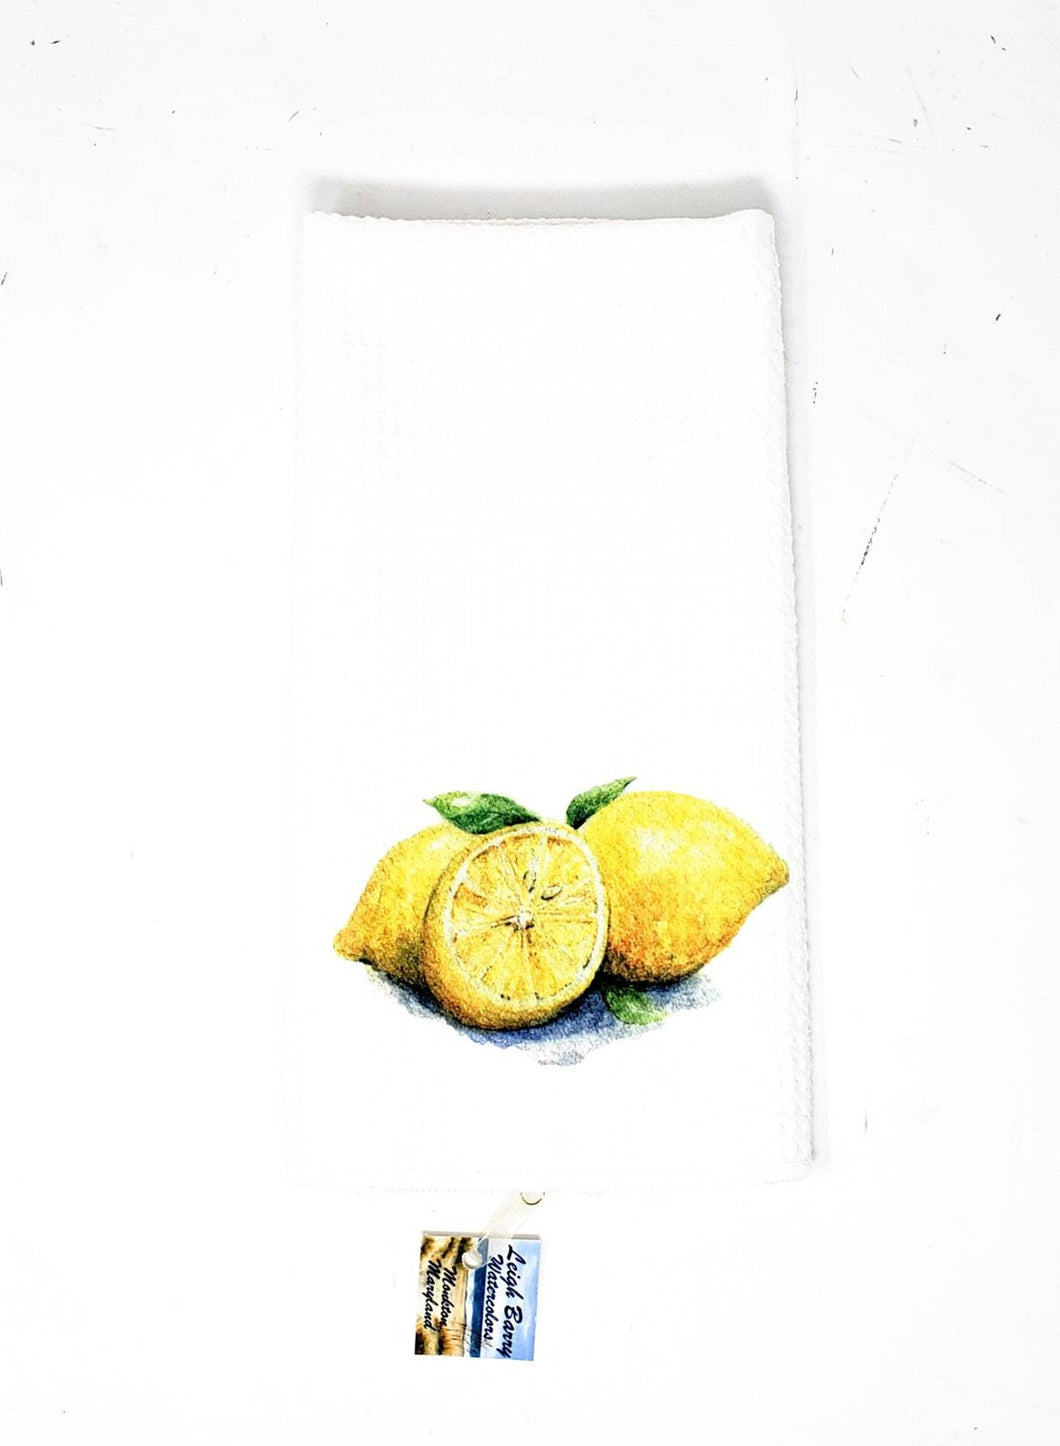 Lemons Tea Towel, lemons art, kitchen towels watercolor fruit, lemon decor, kitchen decor, kitchen art, citrus decor, lemon kitchen art